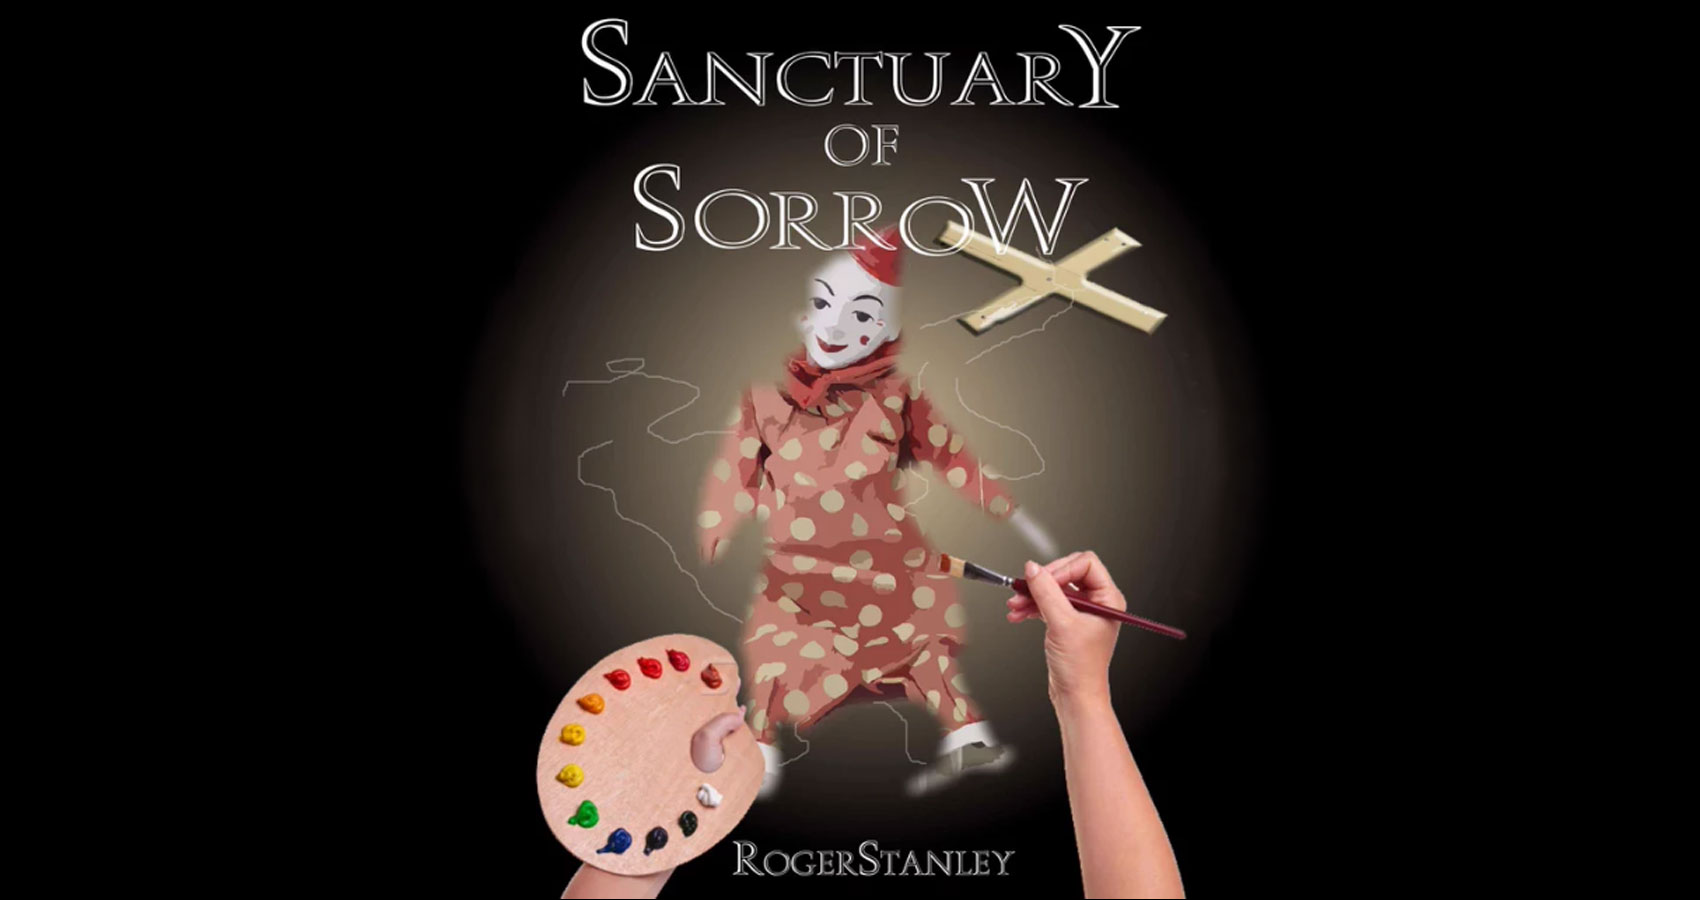 Sanctuary of Sorrow by Roger Stanley at Spillwords.com